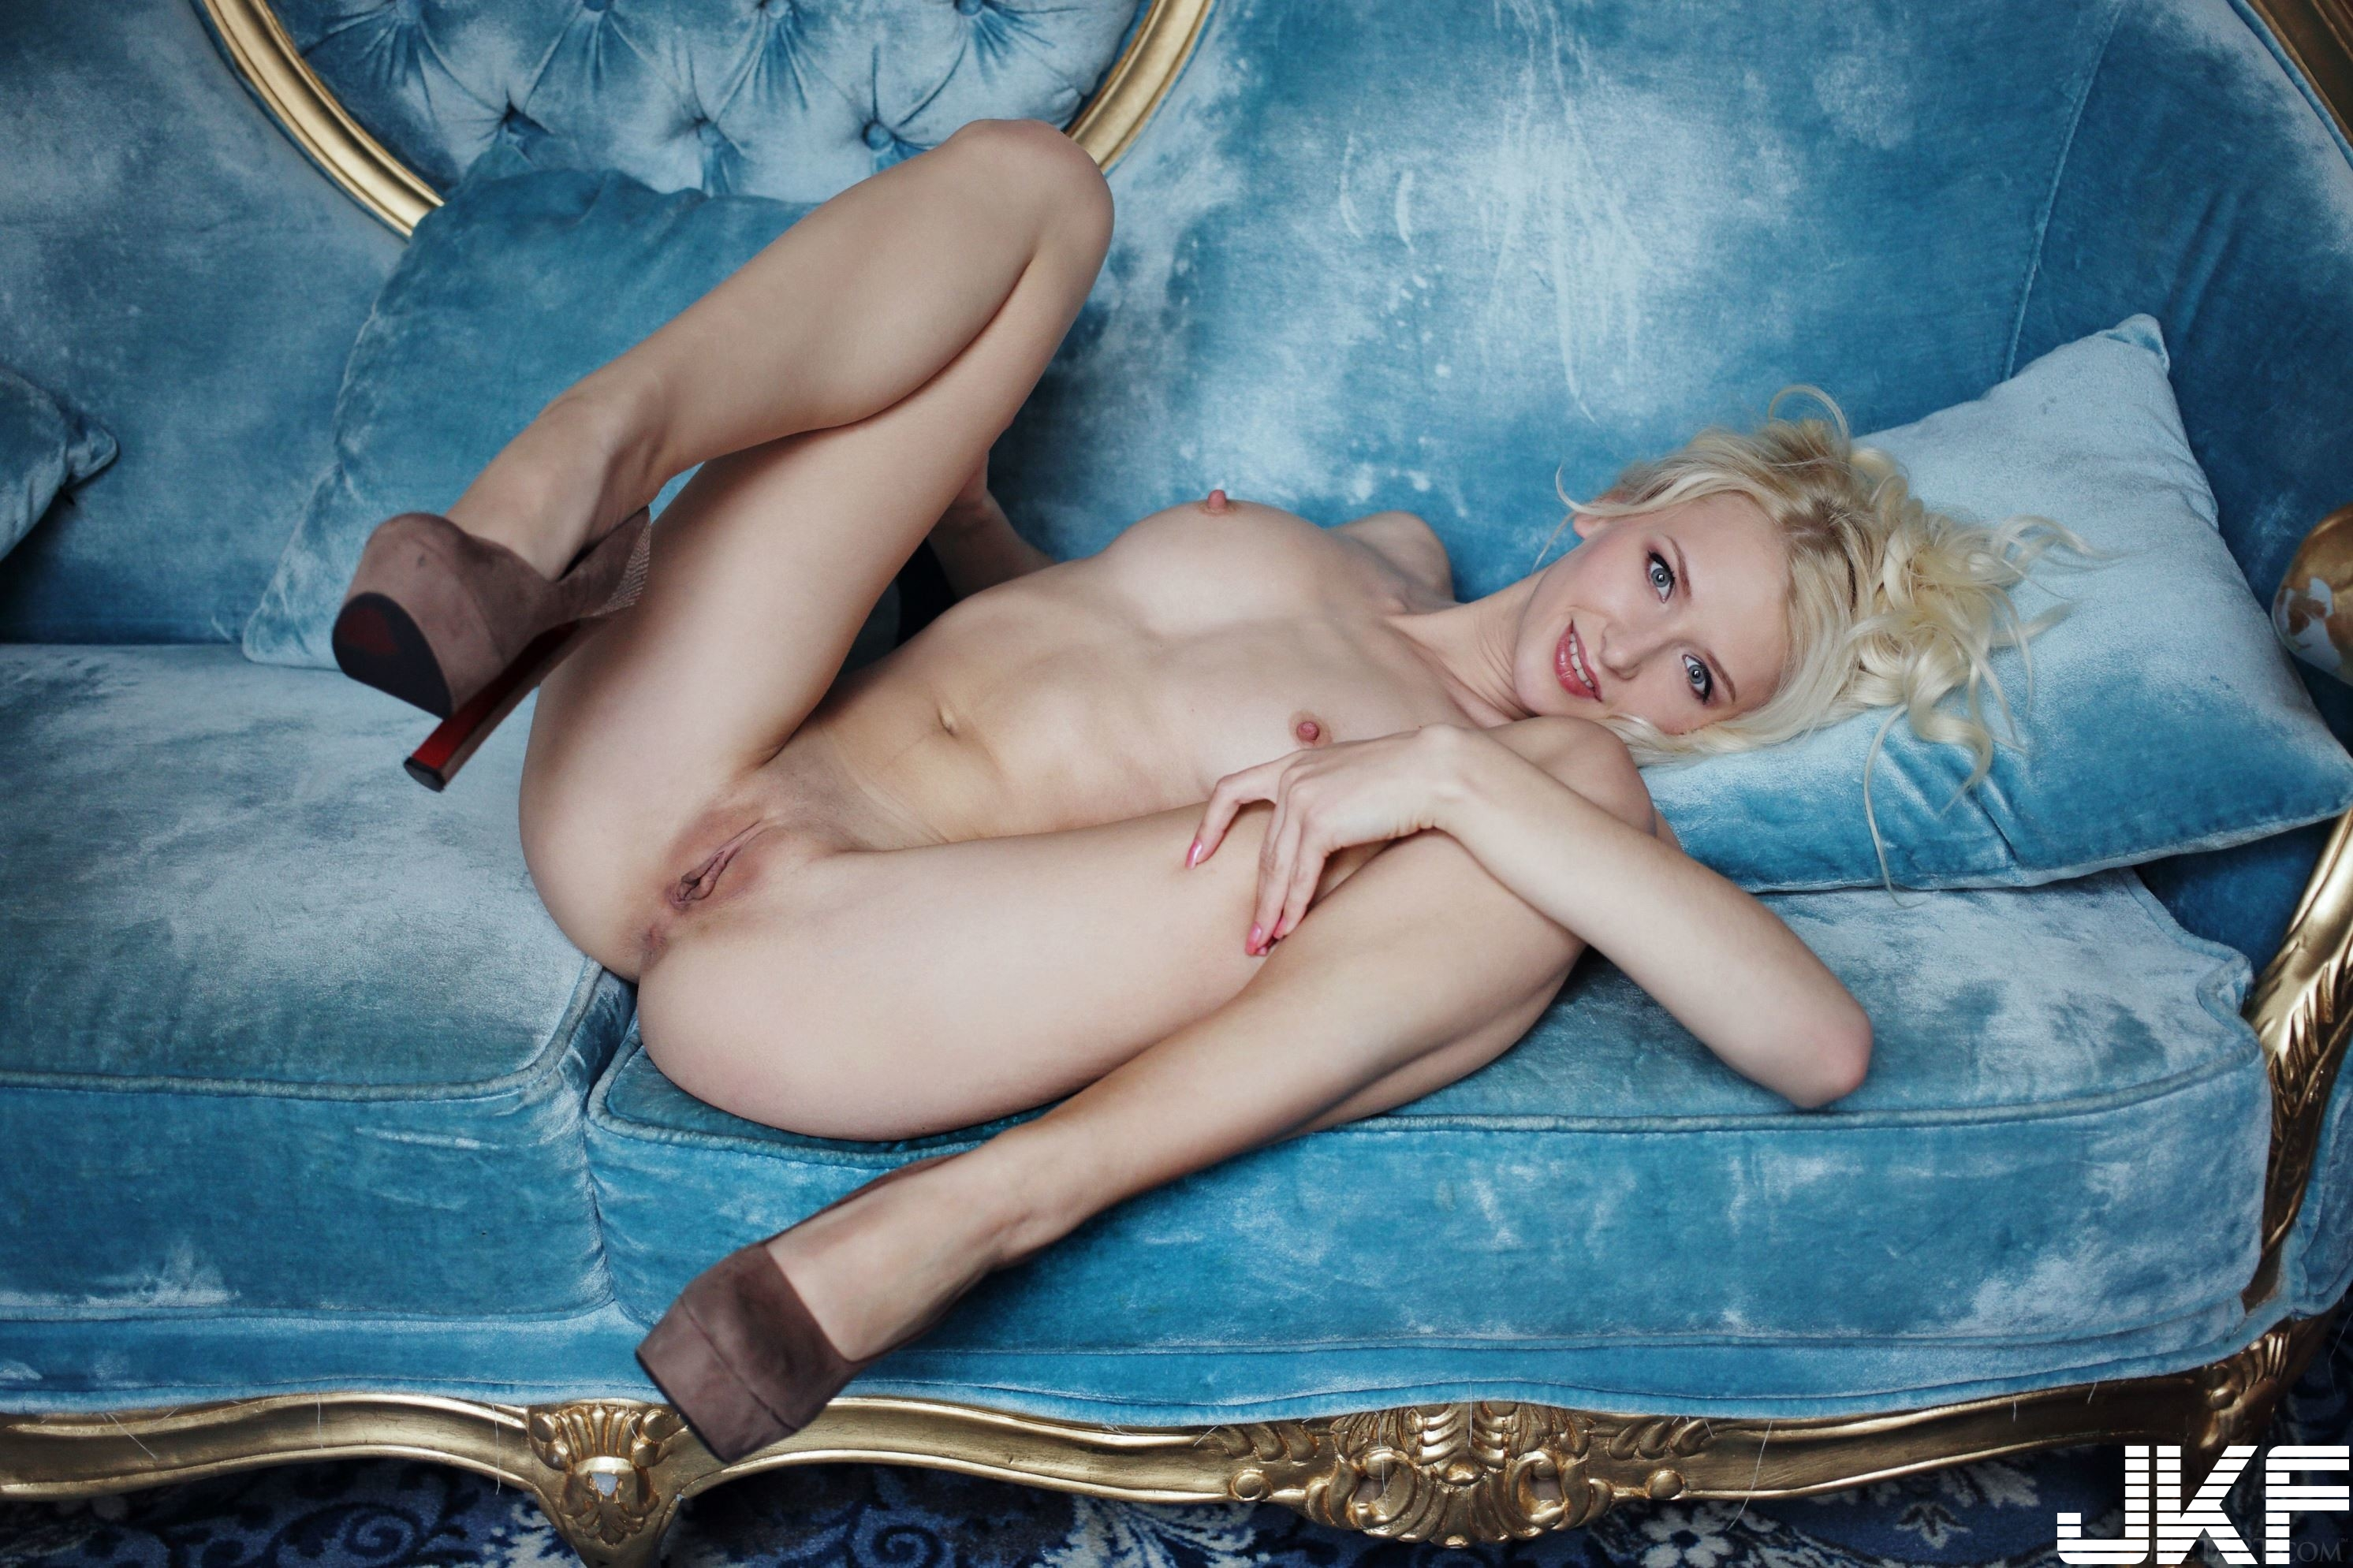 Shaved-Blonde-Adelia-B-with-Thick-Nipples-8.jpg